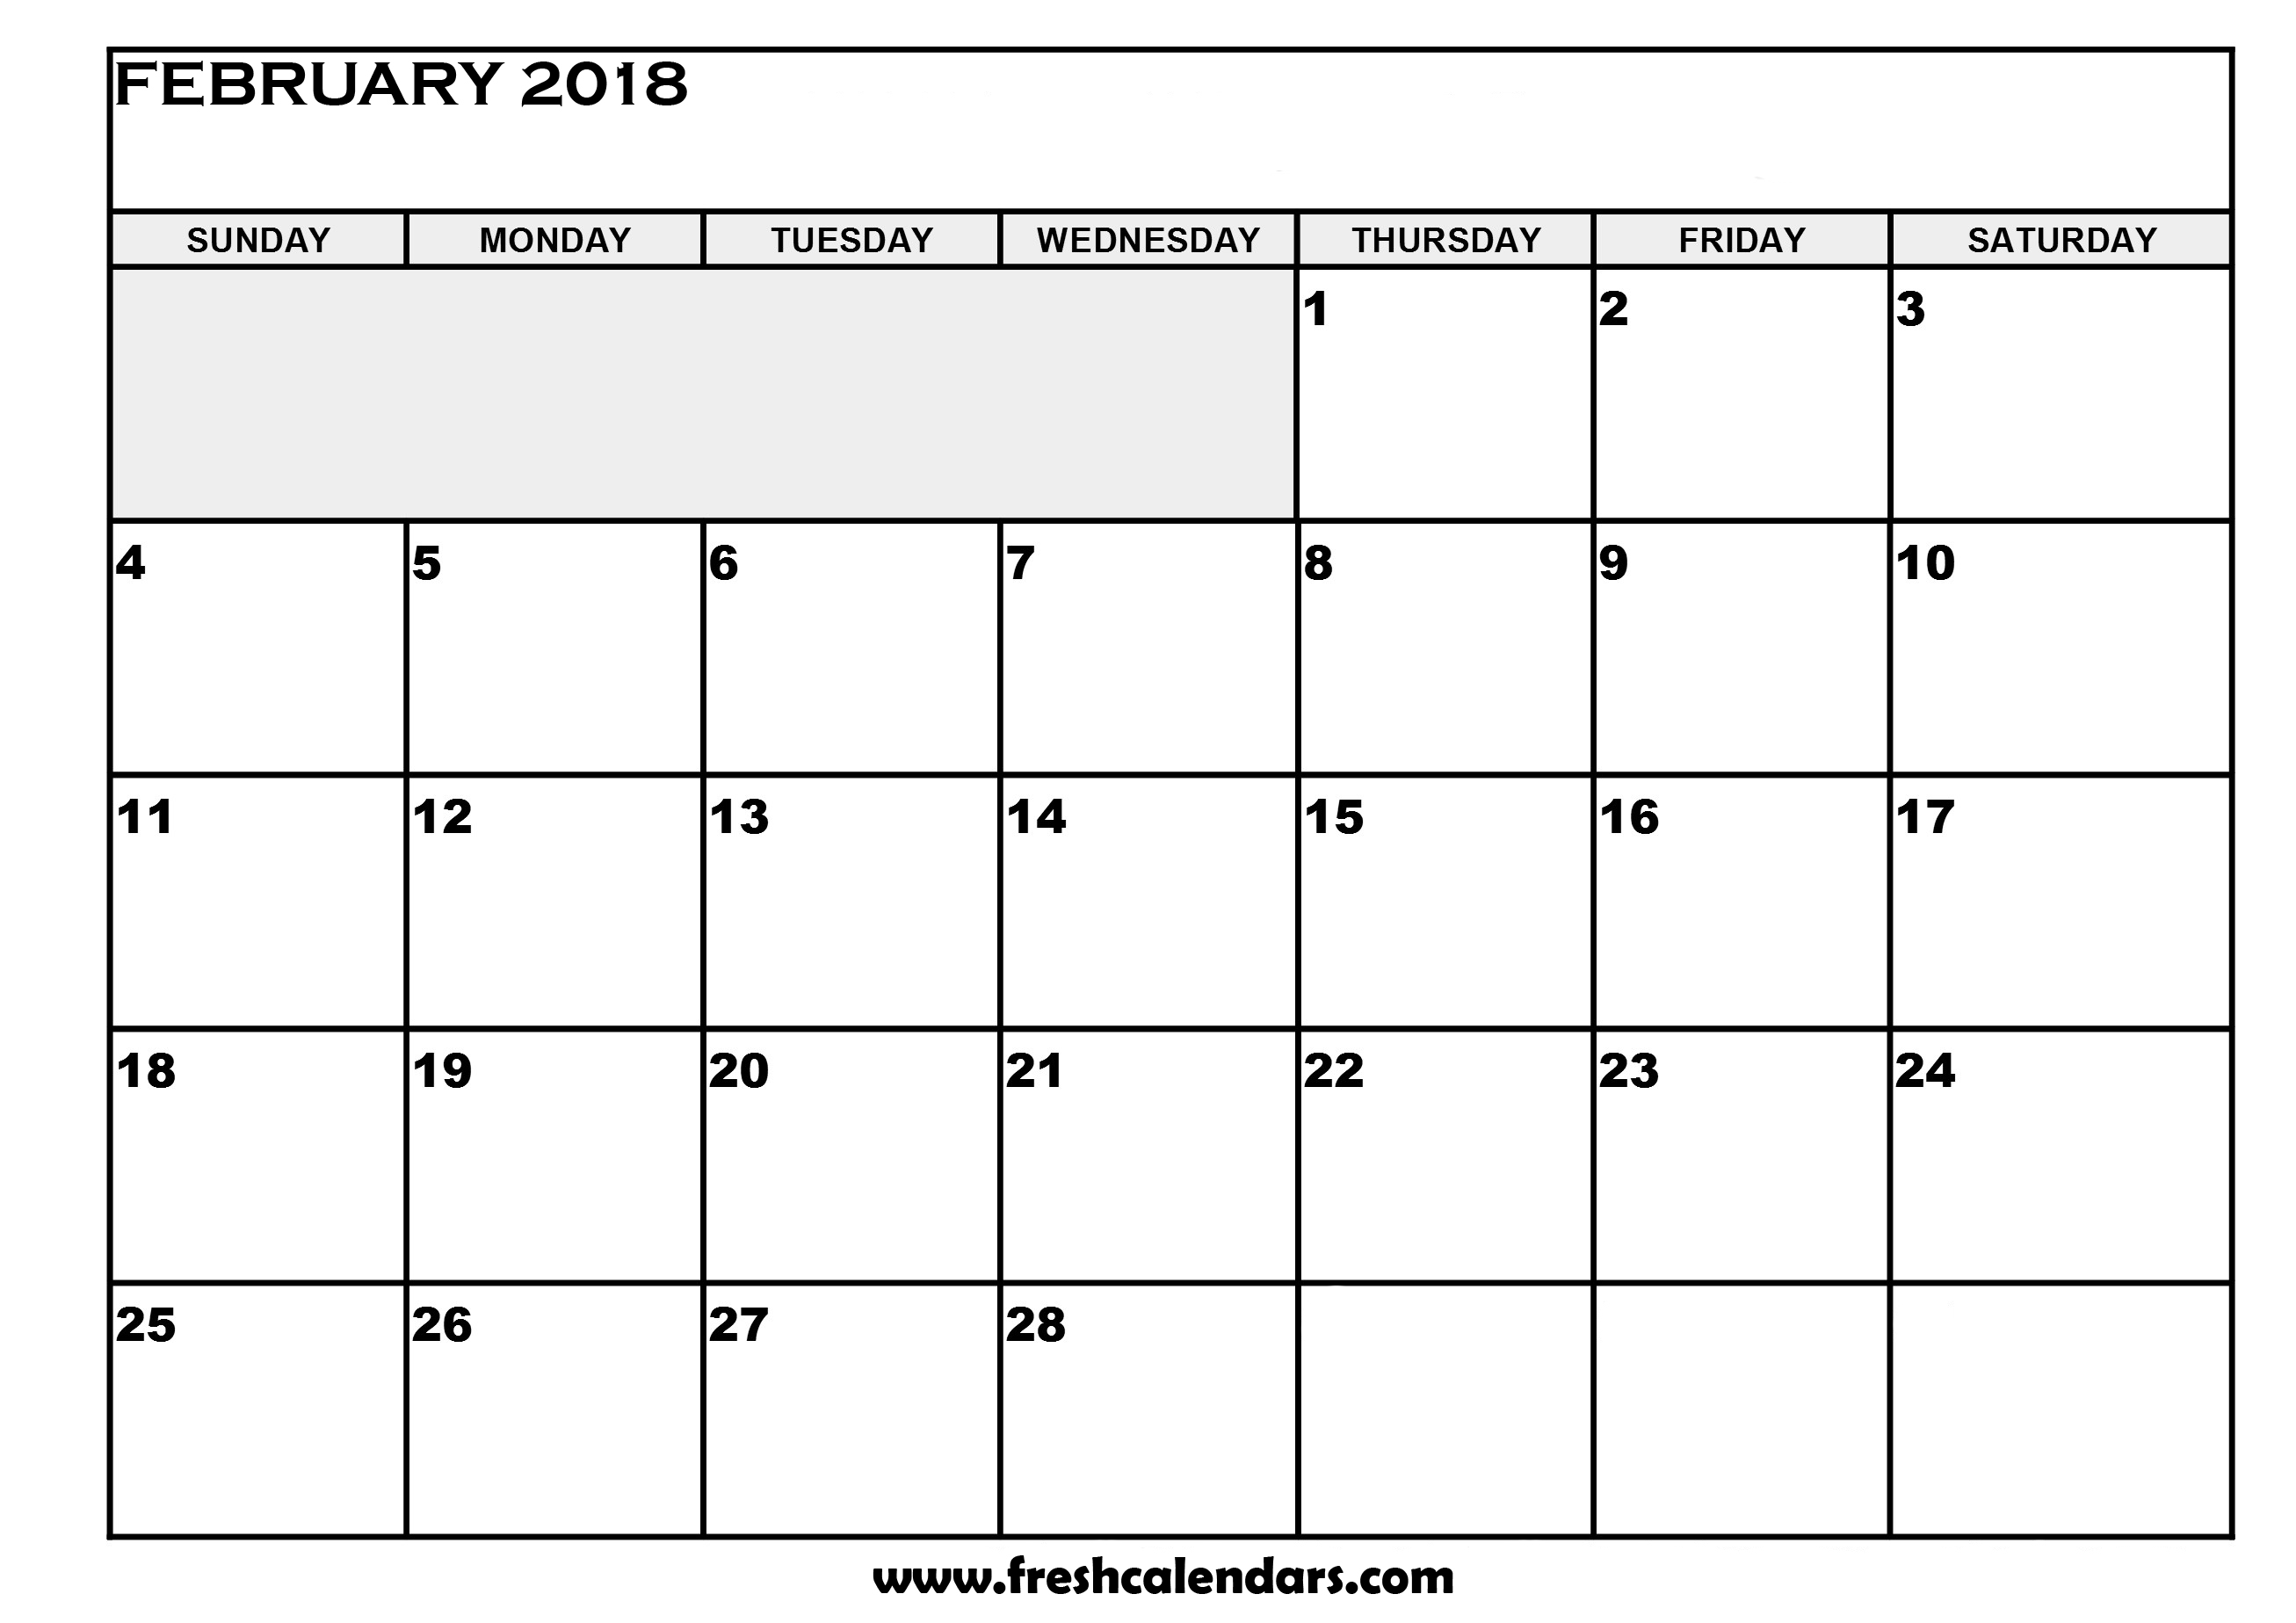 2018 February Calendar Download Template, February 2018 Calendar